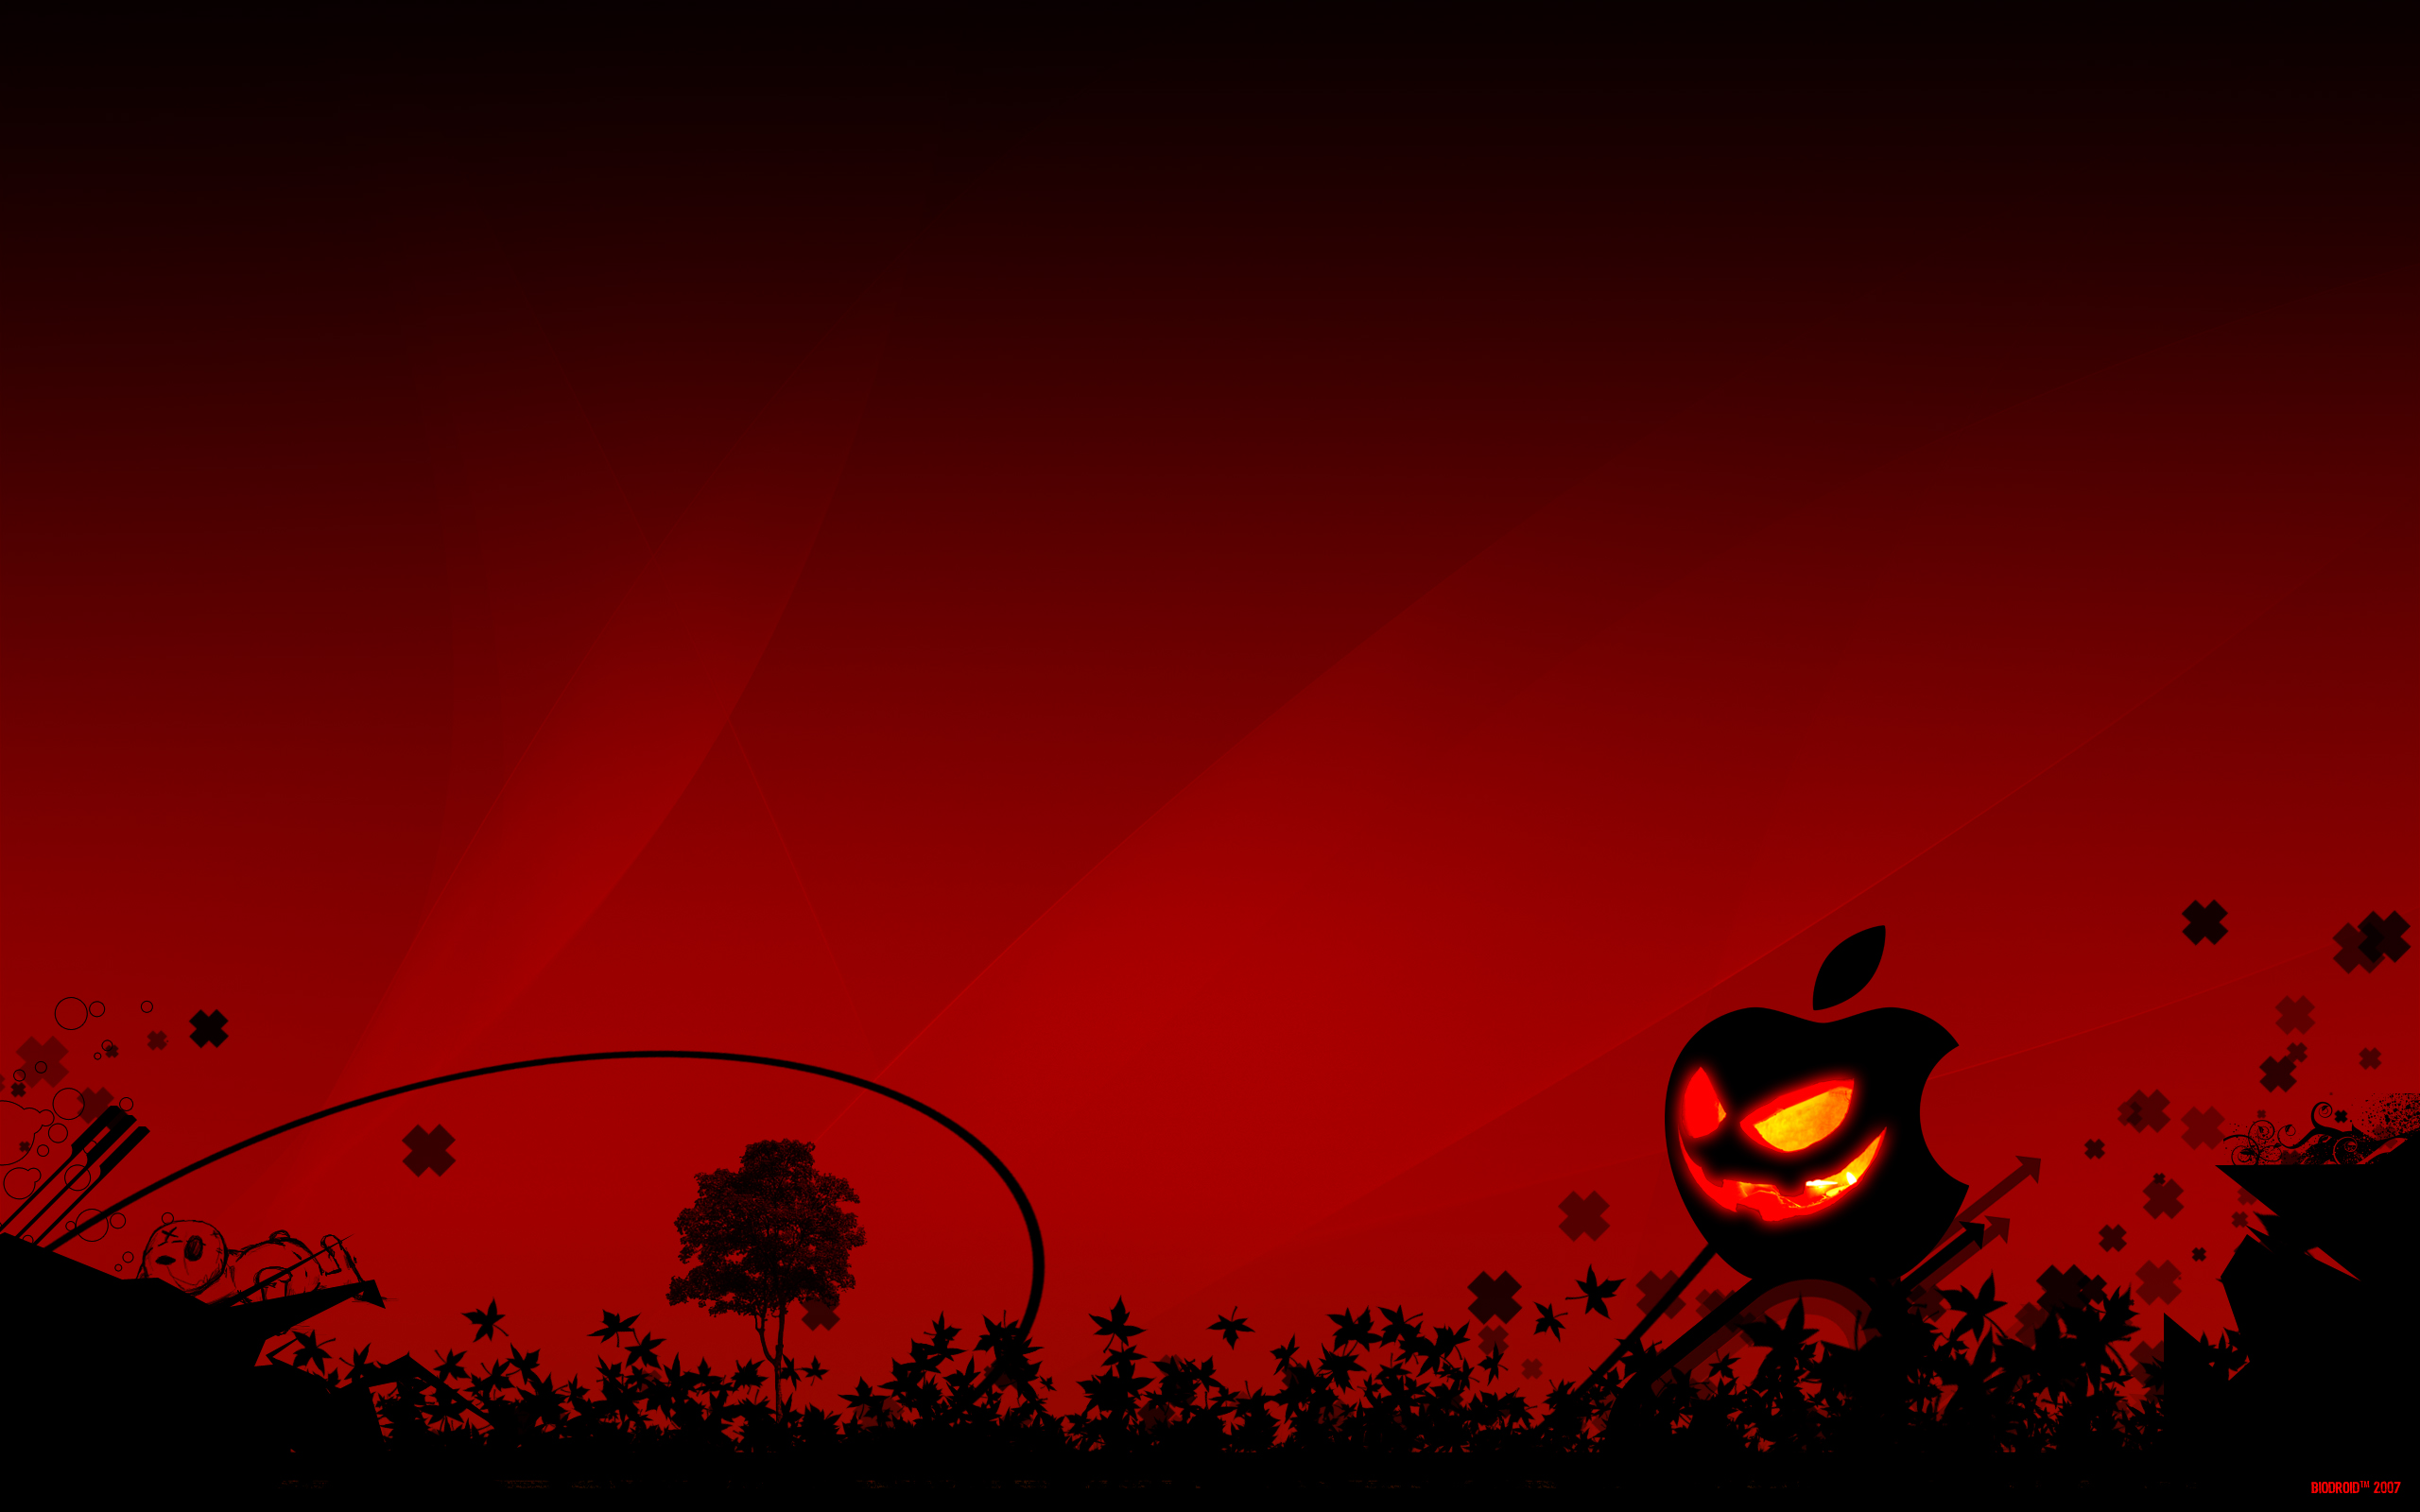 Scary Halloween 2012 HD Wallpapers Pumpkins Witches 2560x1600